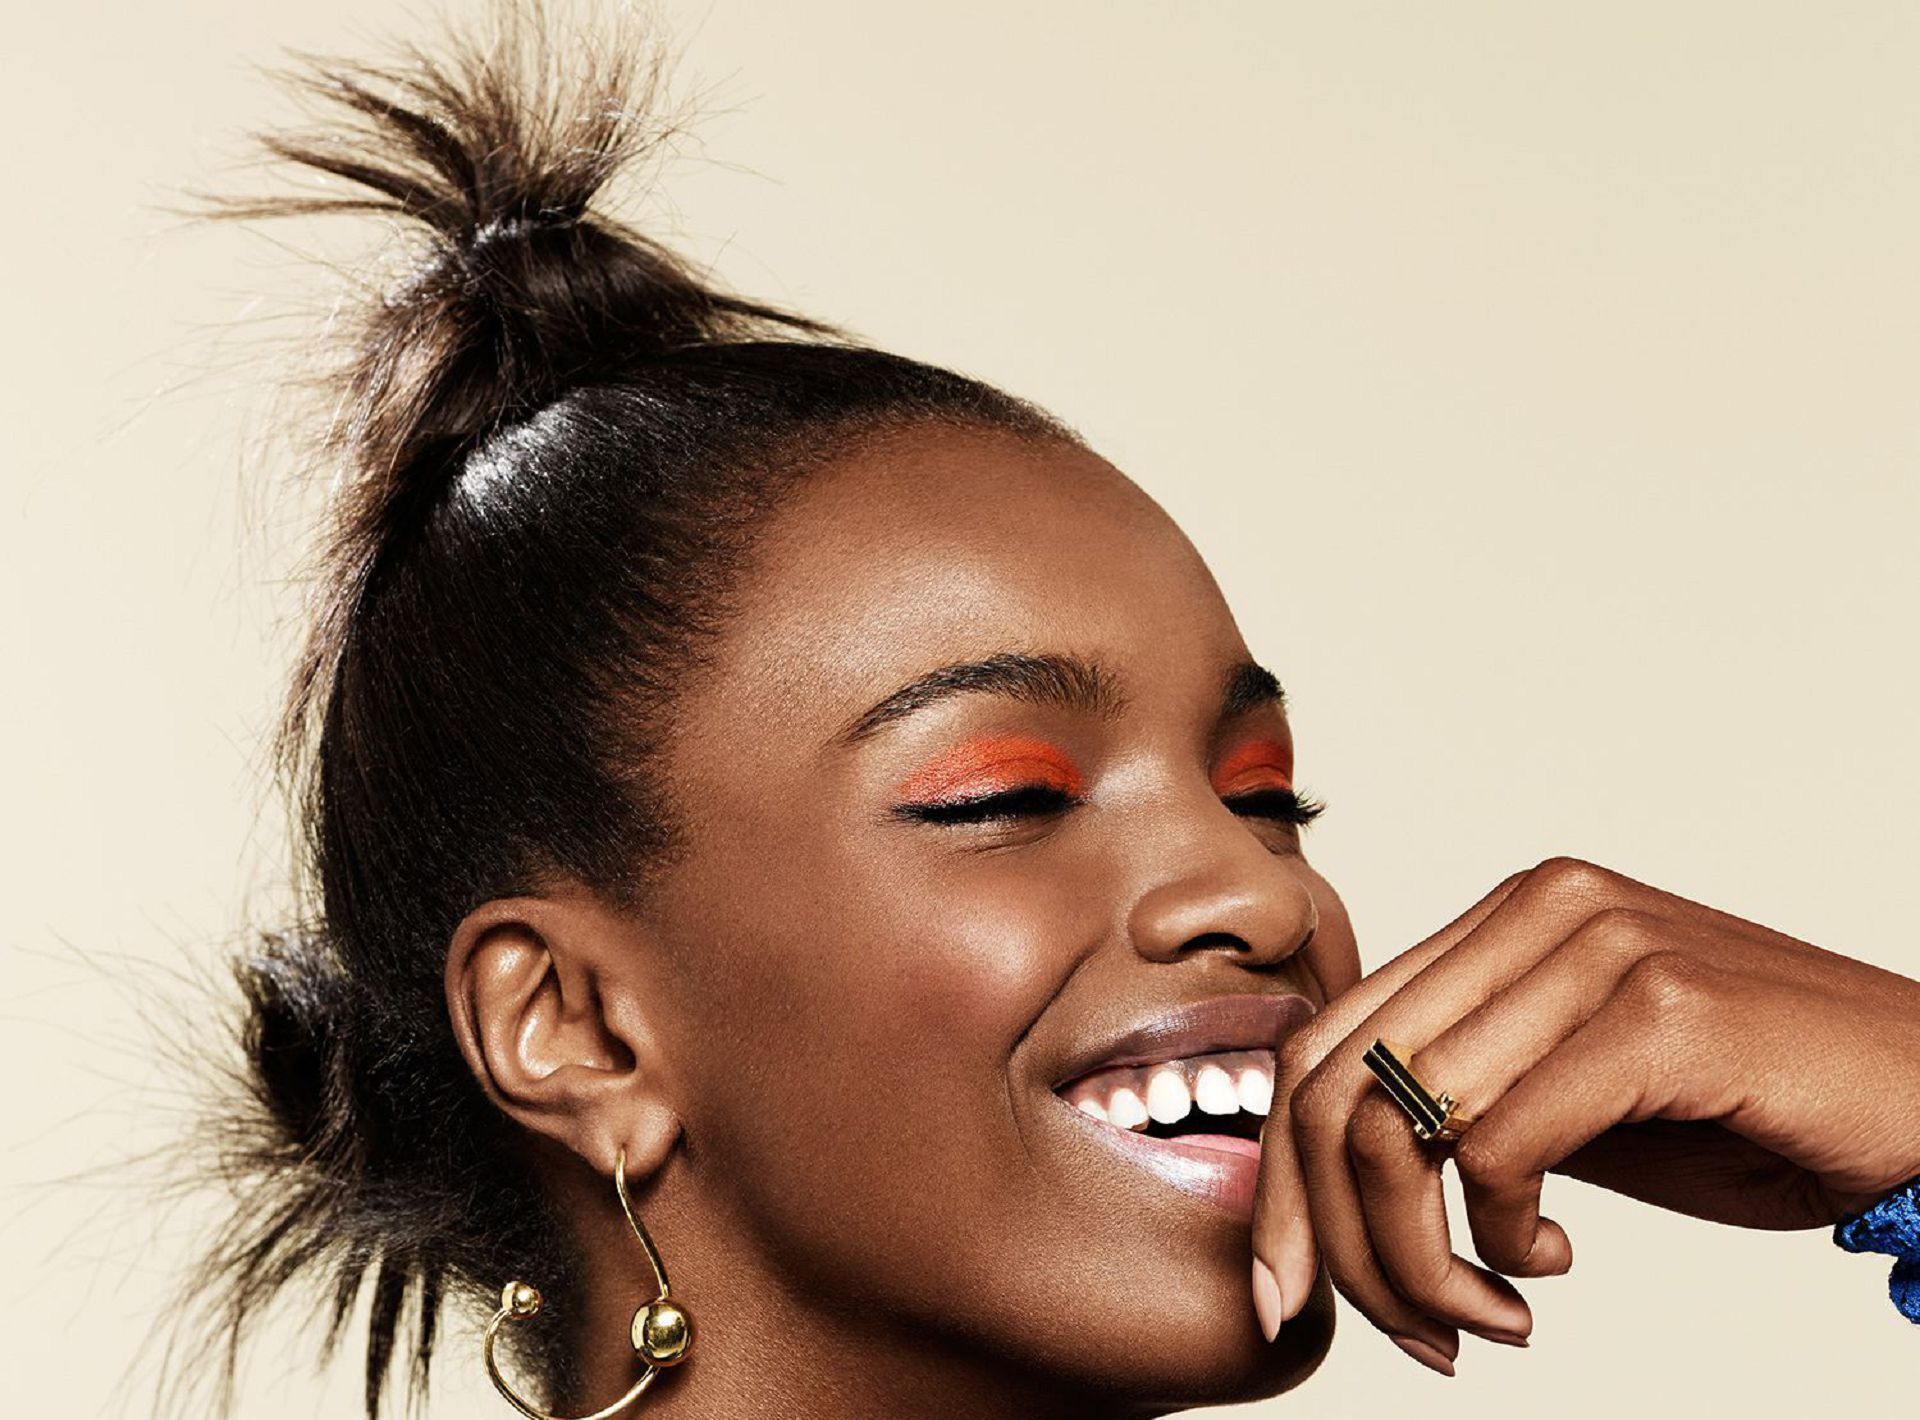 leomie anderson face wallpaper 66729